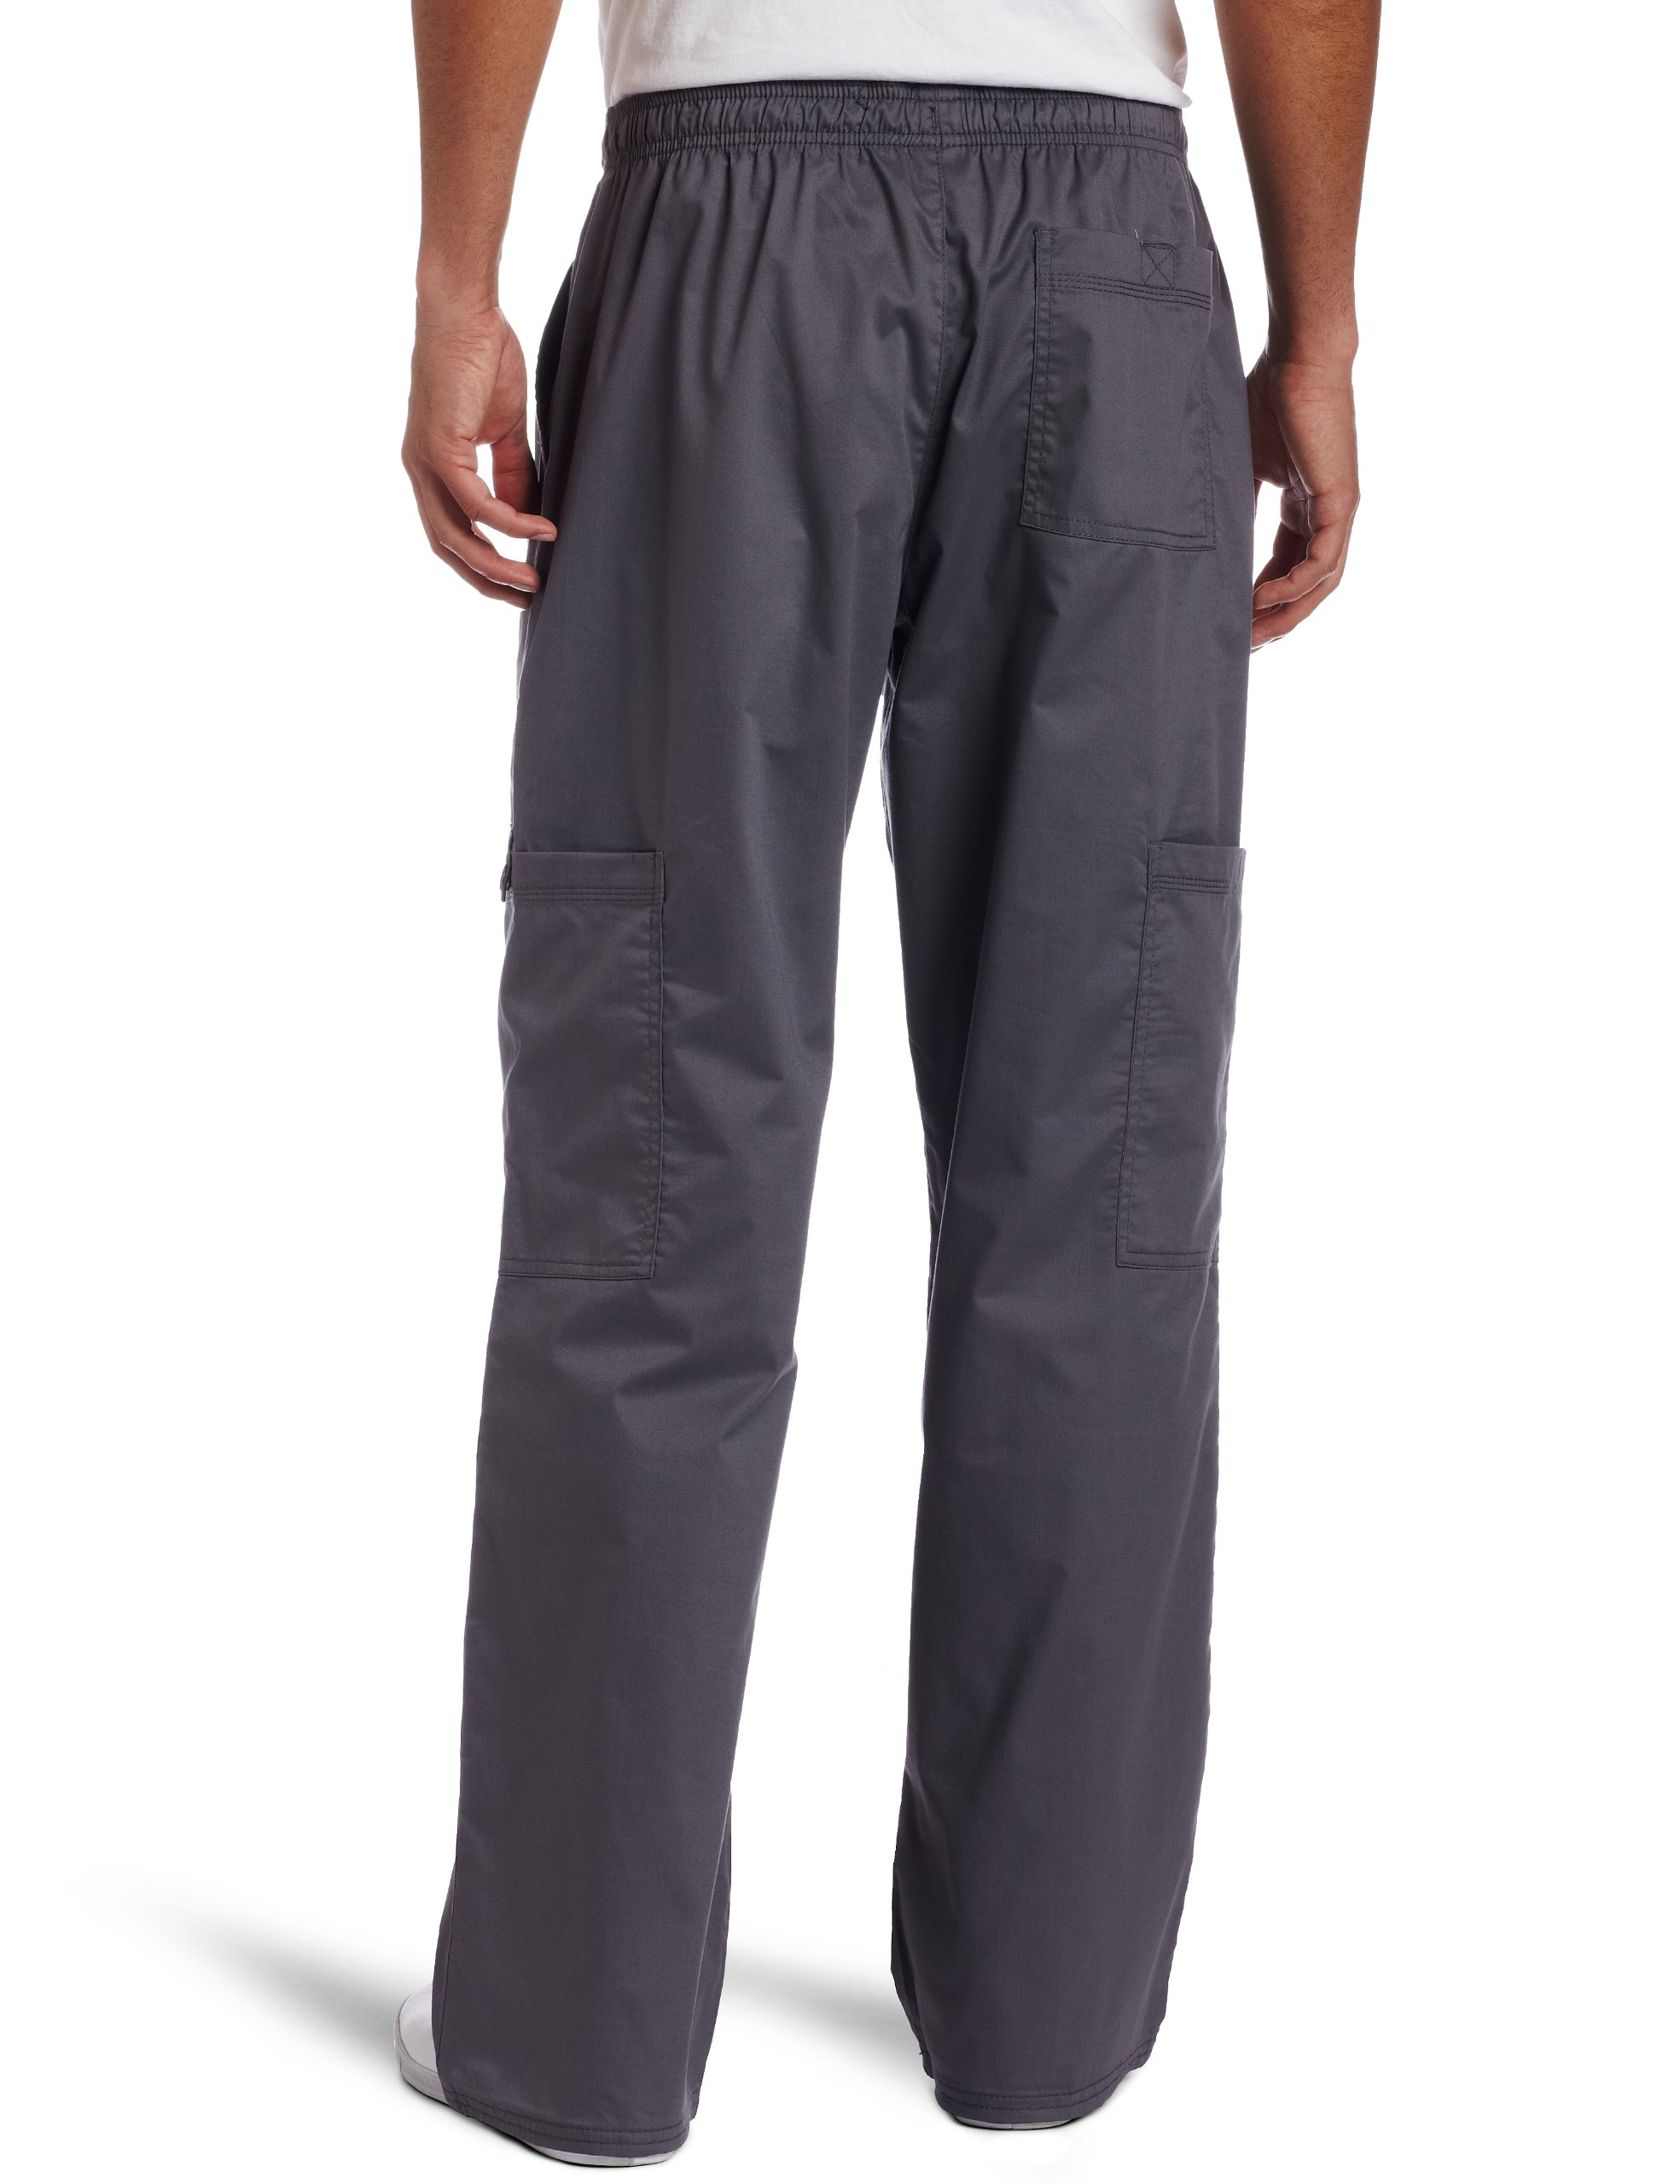 Dickies Generation Flex Men's Youtility Scrub Pants,Pewter,X-Large by Dickies (Image #2)